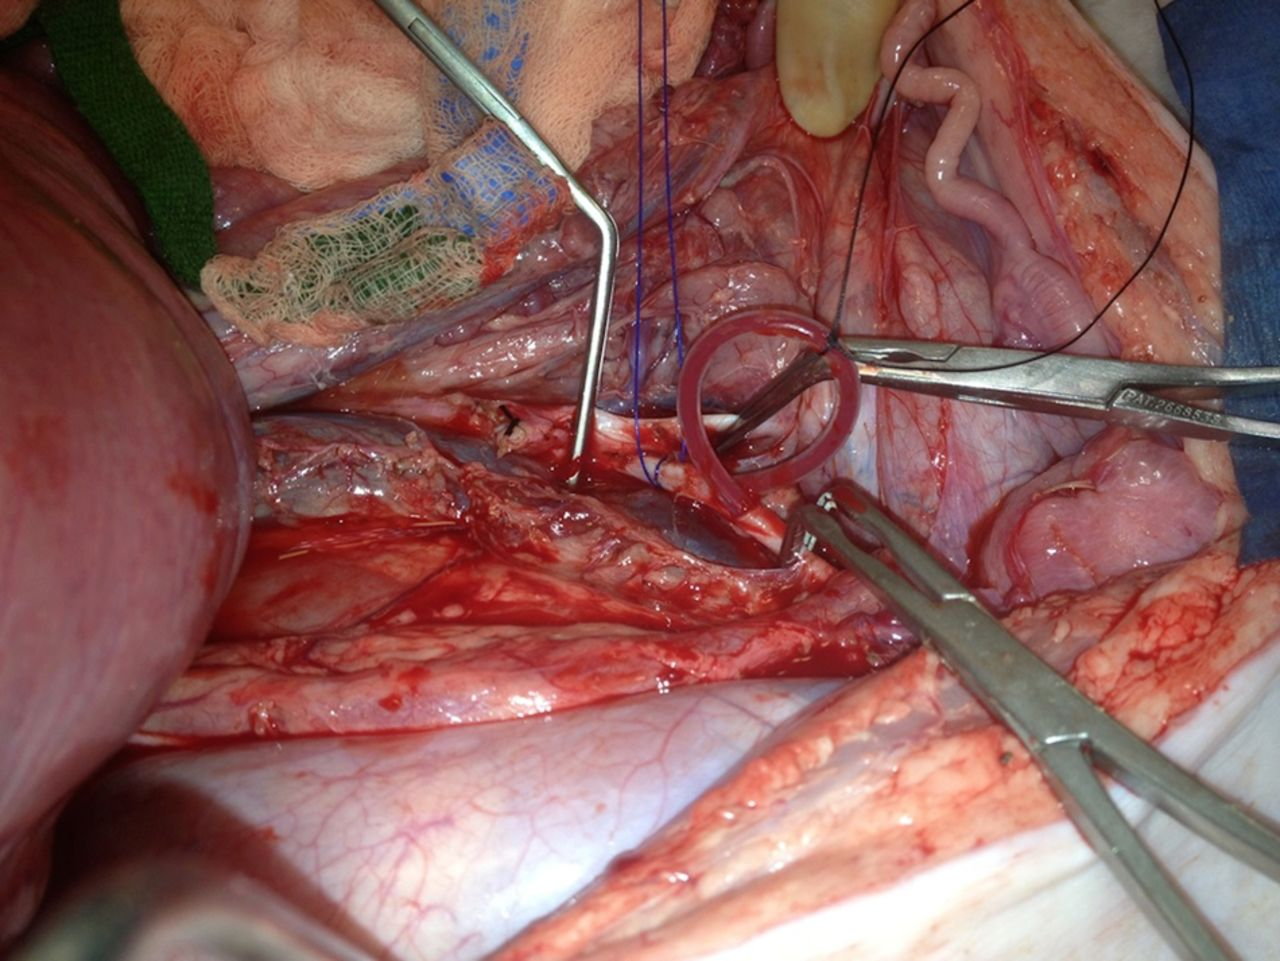 Abdominal vascular trauma | Trauma Surgery & Acute Care Open